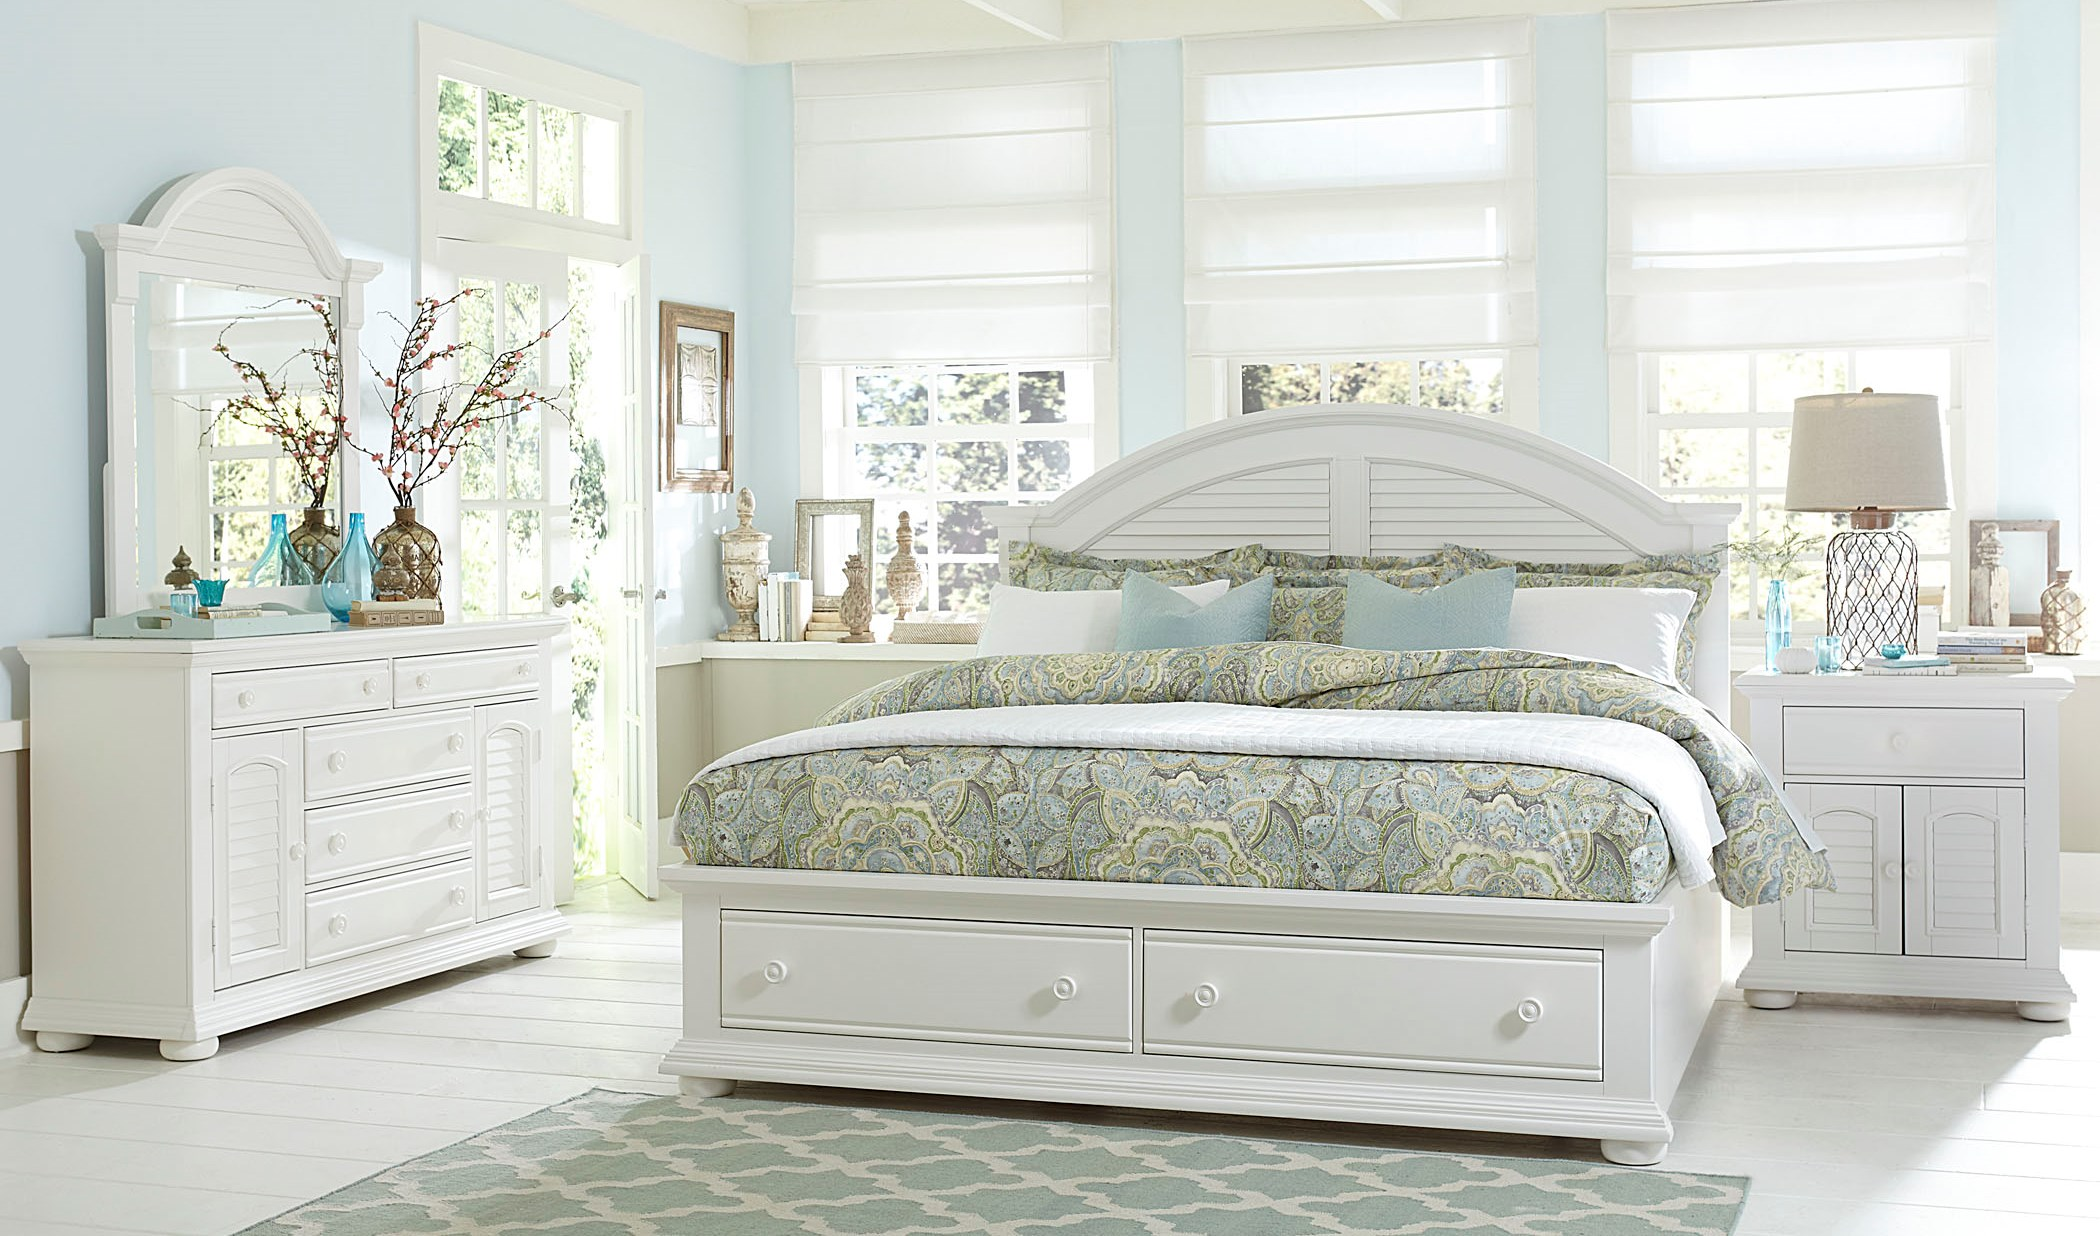 Summer House Oyster White Panel Storage Bedroom SetMedia Image